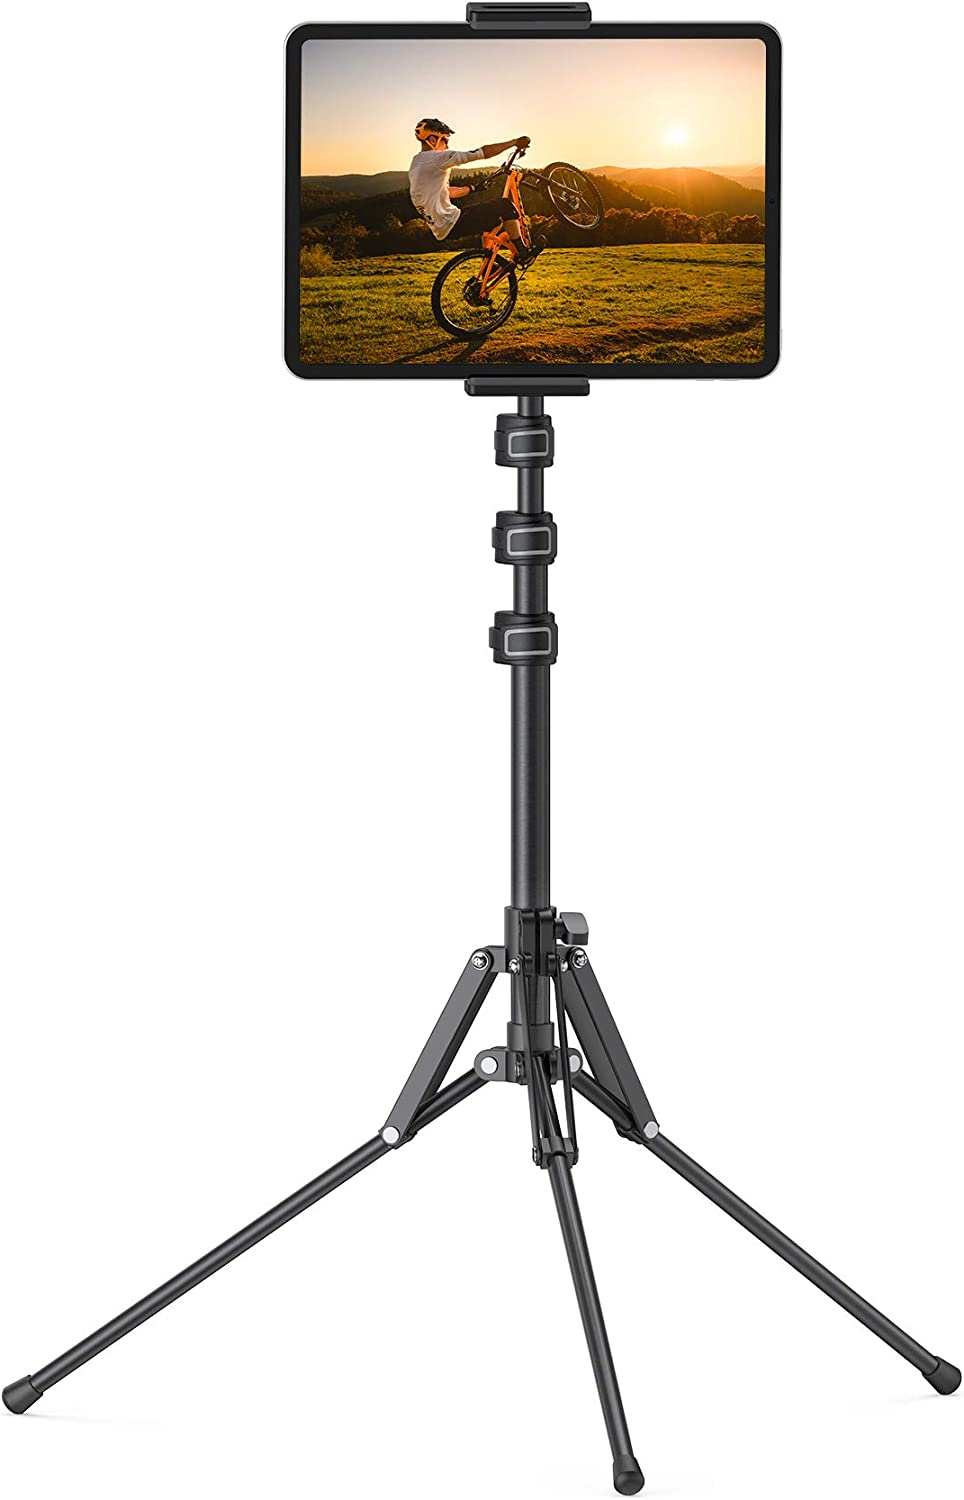 Lamicall Tablet Floor Tripod Stand - Tablet Holder Mount with Adjustable Height for Live Stream/Watching, Compatible with iPad Pro 12.9, Mini, Air, iPhone and 4.7-13